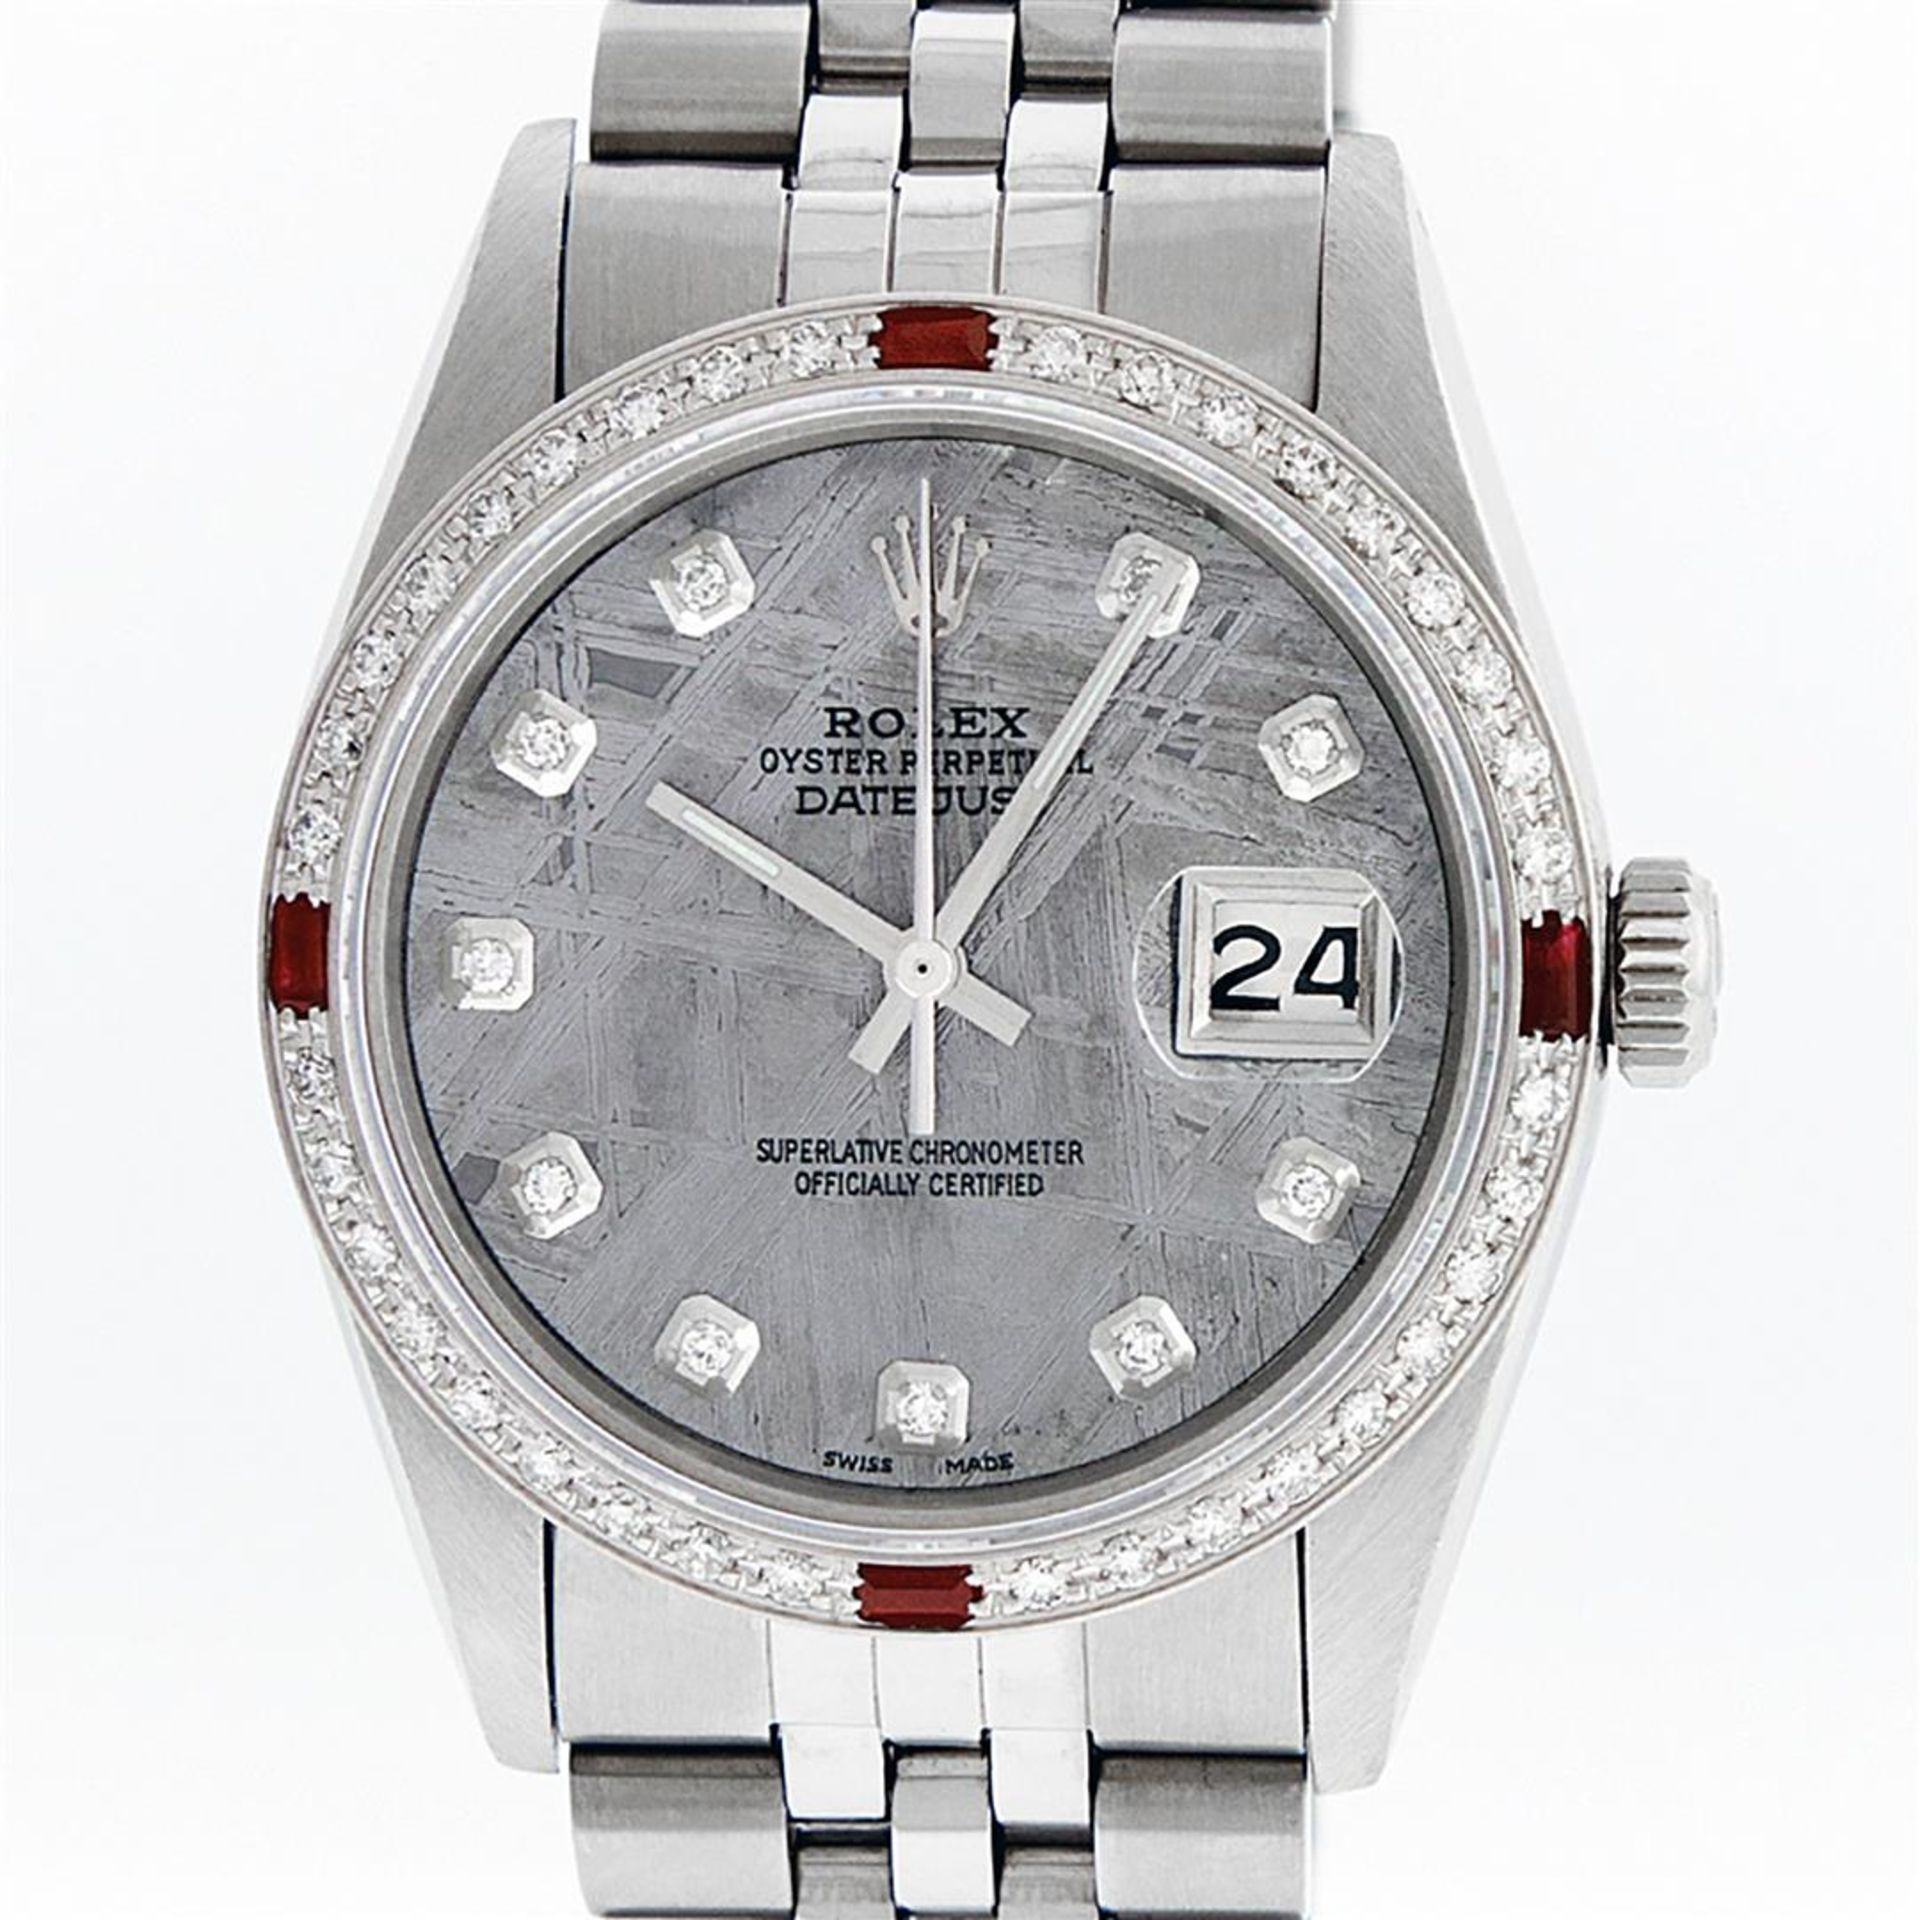 Rolex Mens Stainless Steel Meteorite Diamond And Ruby Datejust Wristwatch 36MM - Image 9 of 9